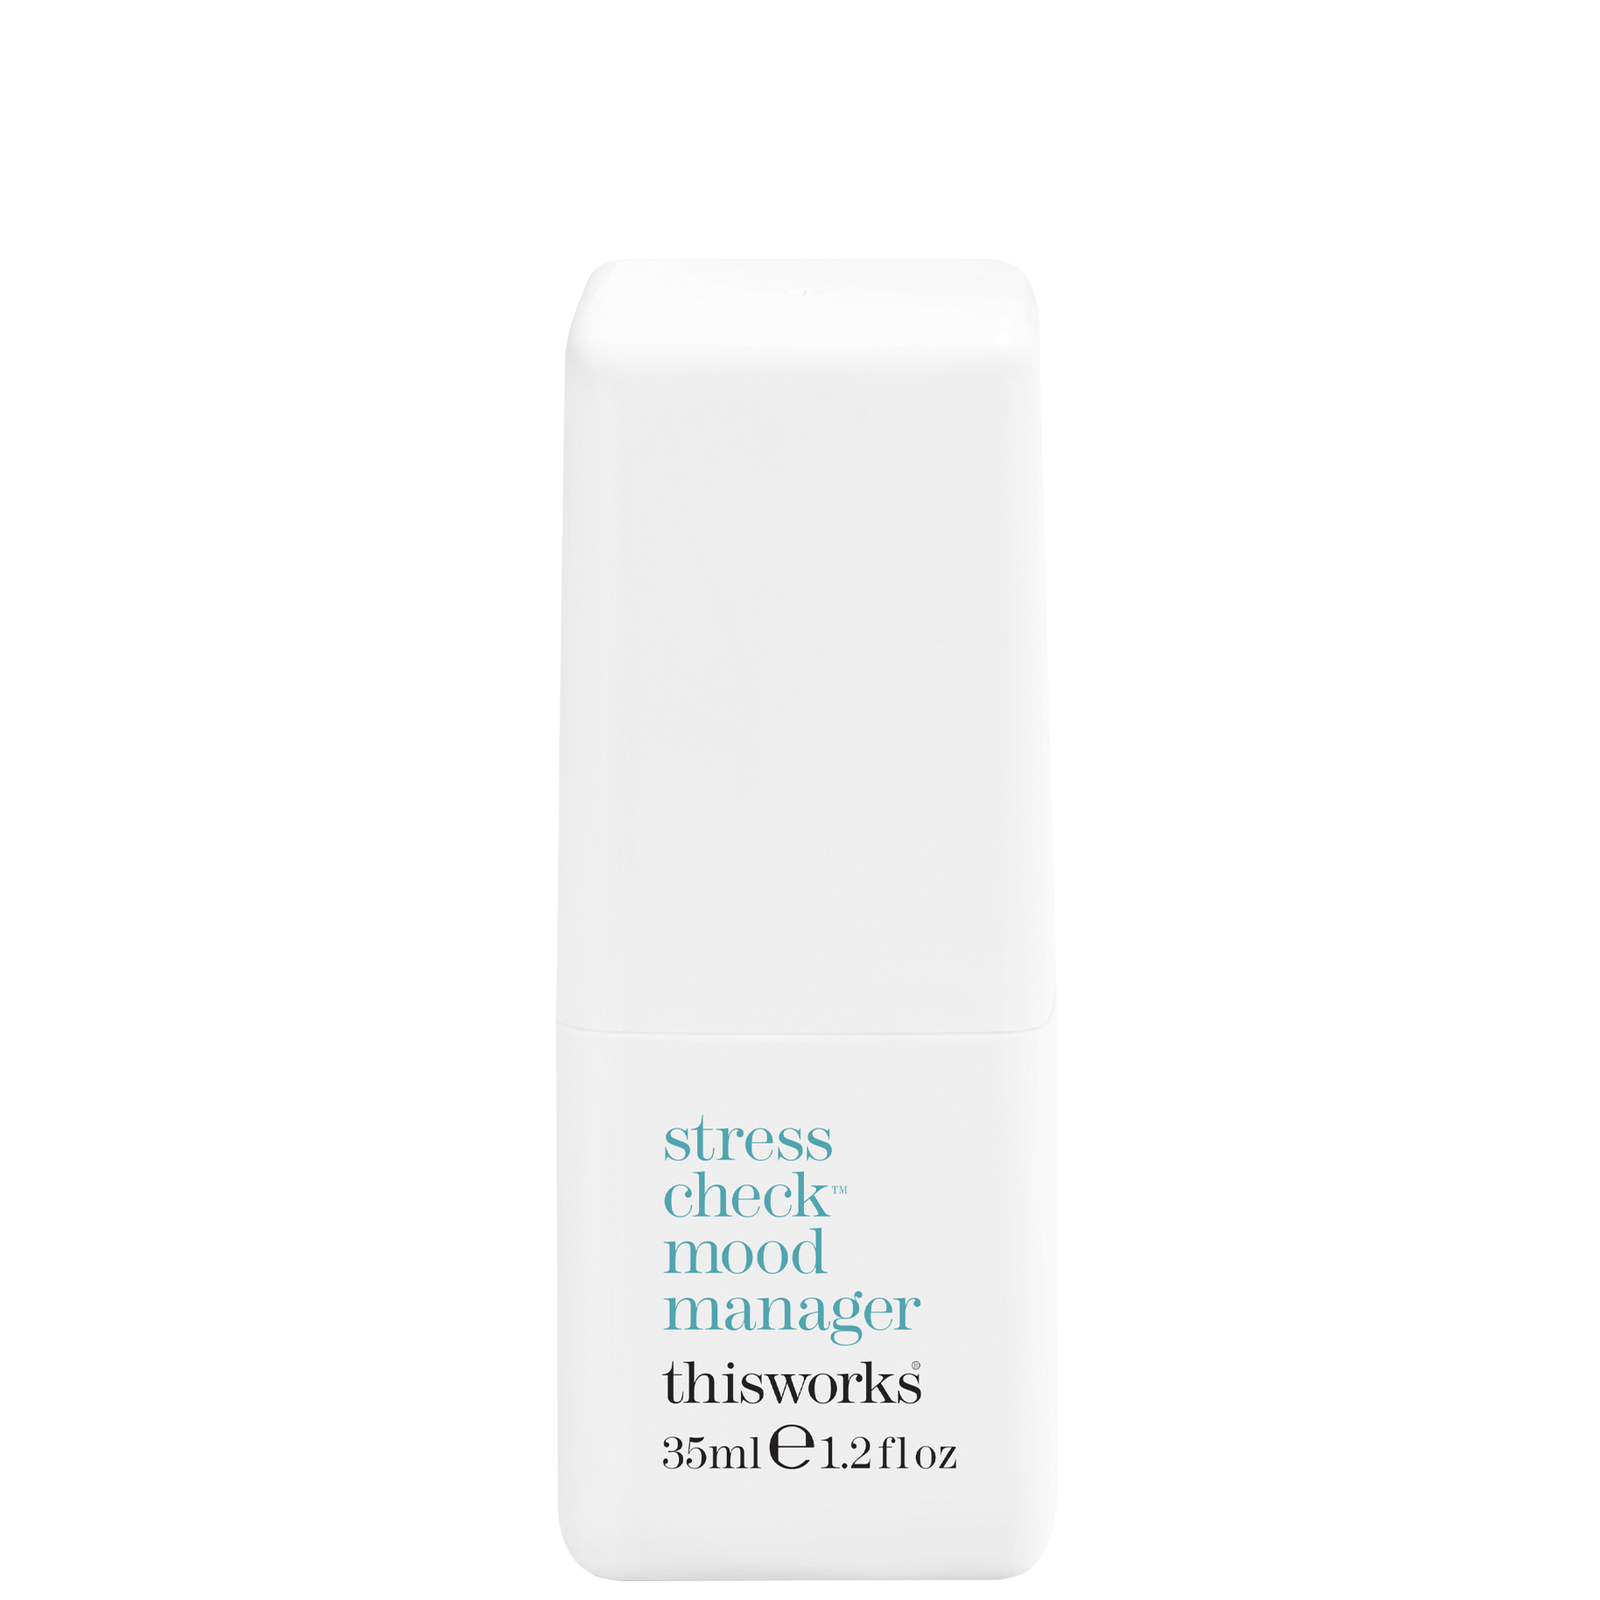 thisworks Body Stress Check Mood Manager 35ml